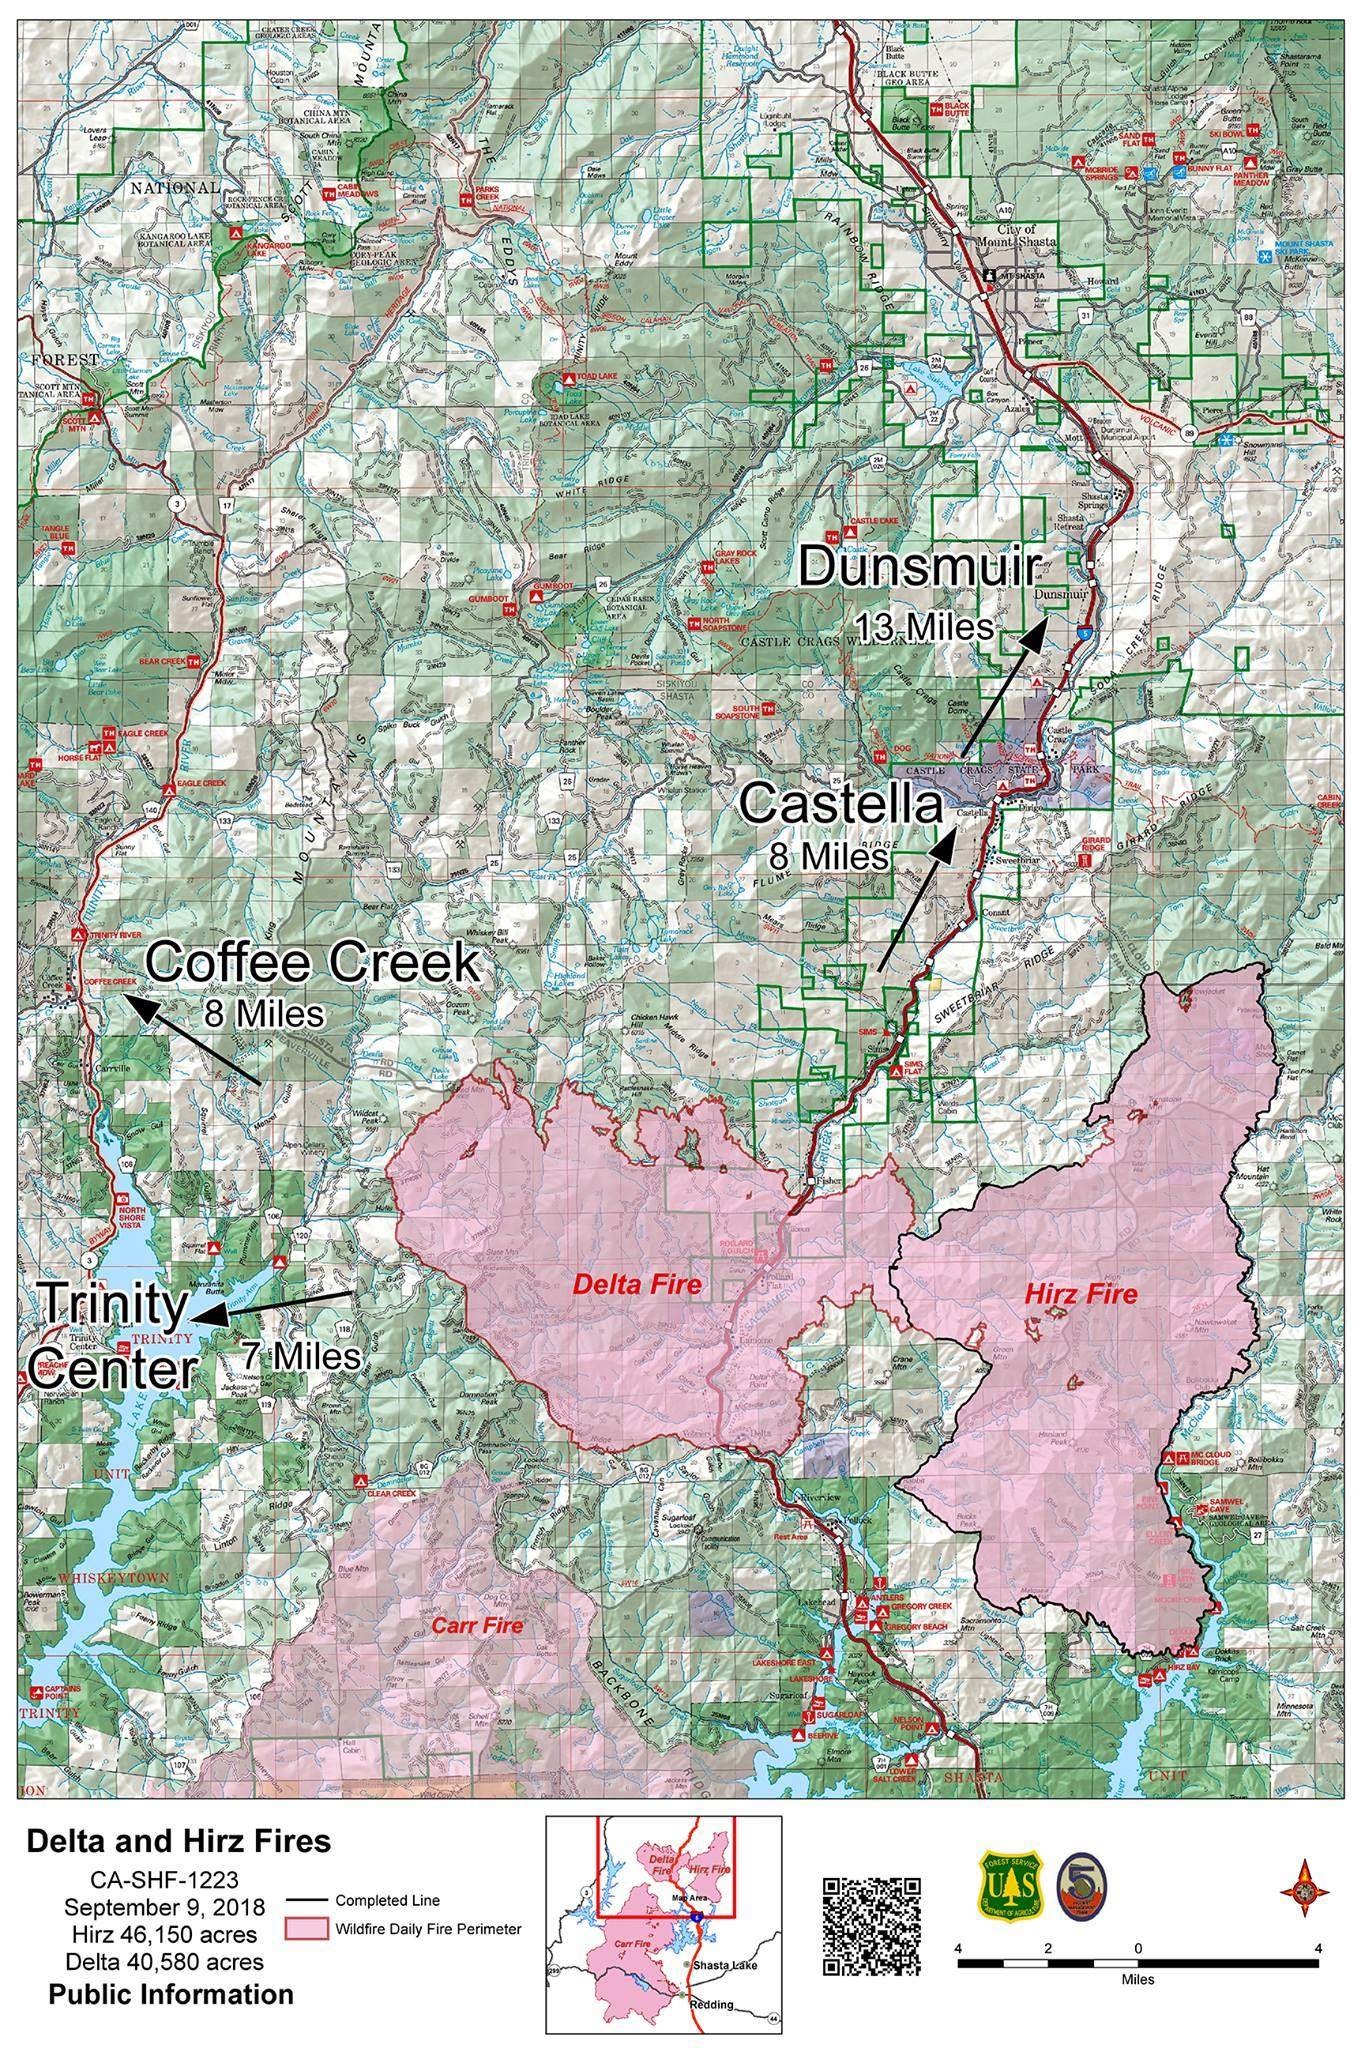 Delta Fire Map Update: California's Fast-Growing Wildfire Spreads To - California Delta Map